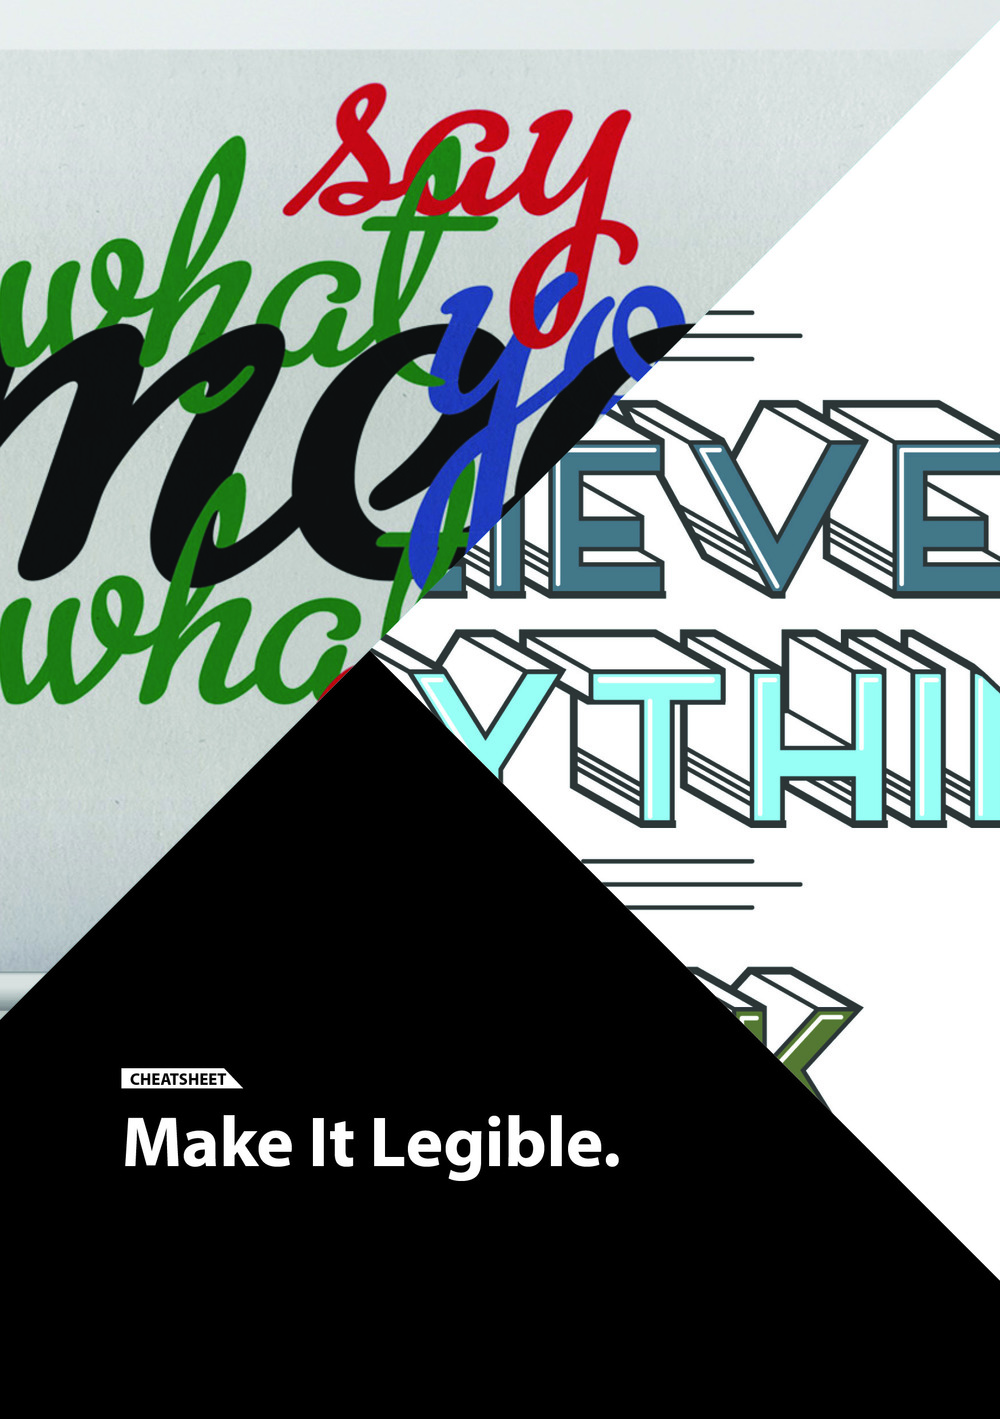 Make it  Legible